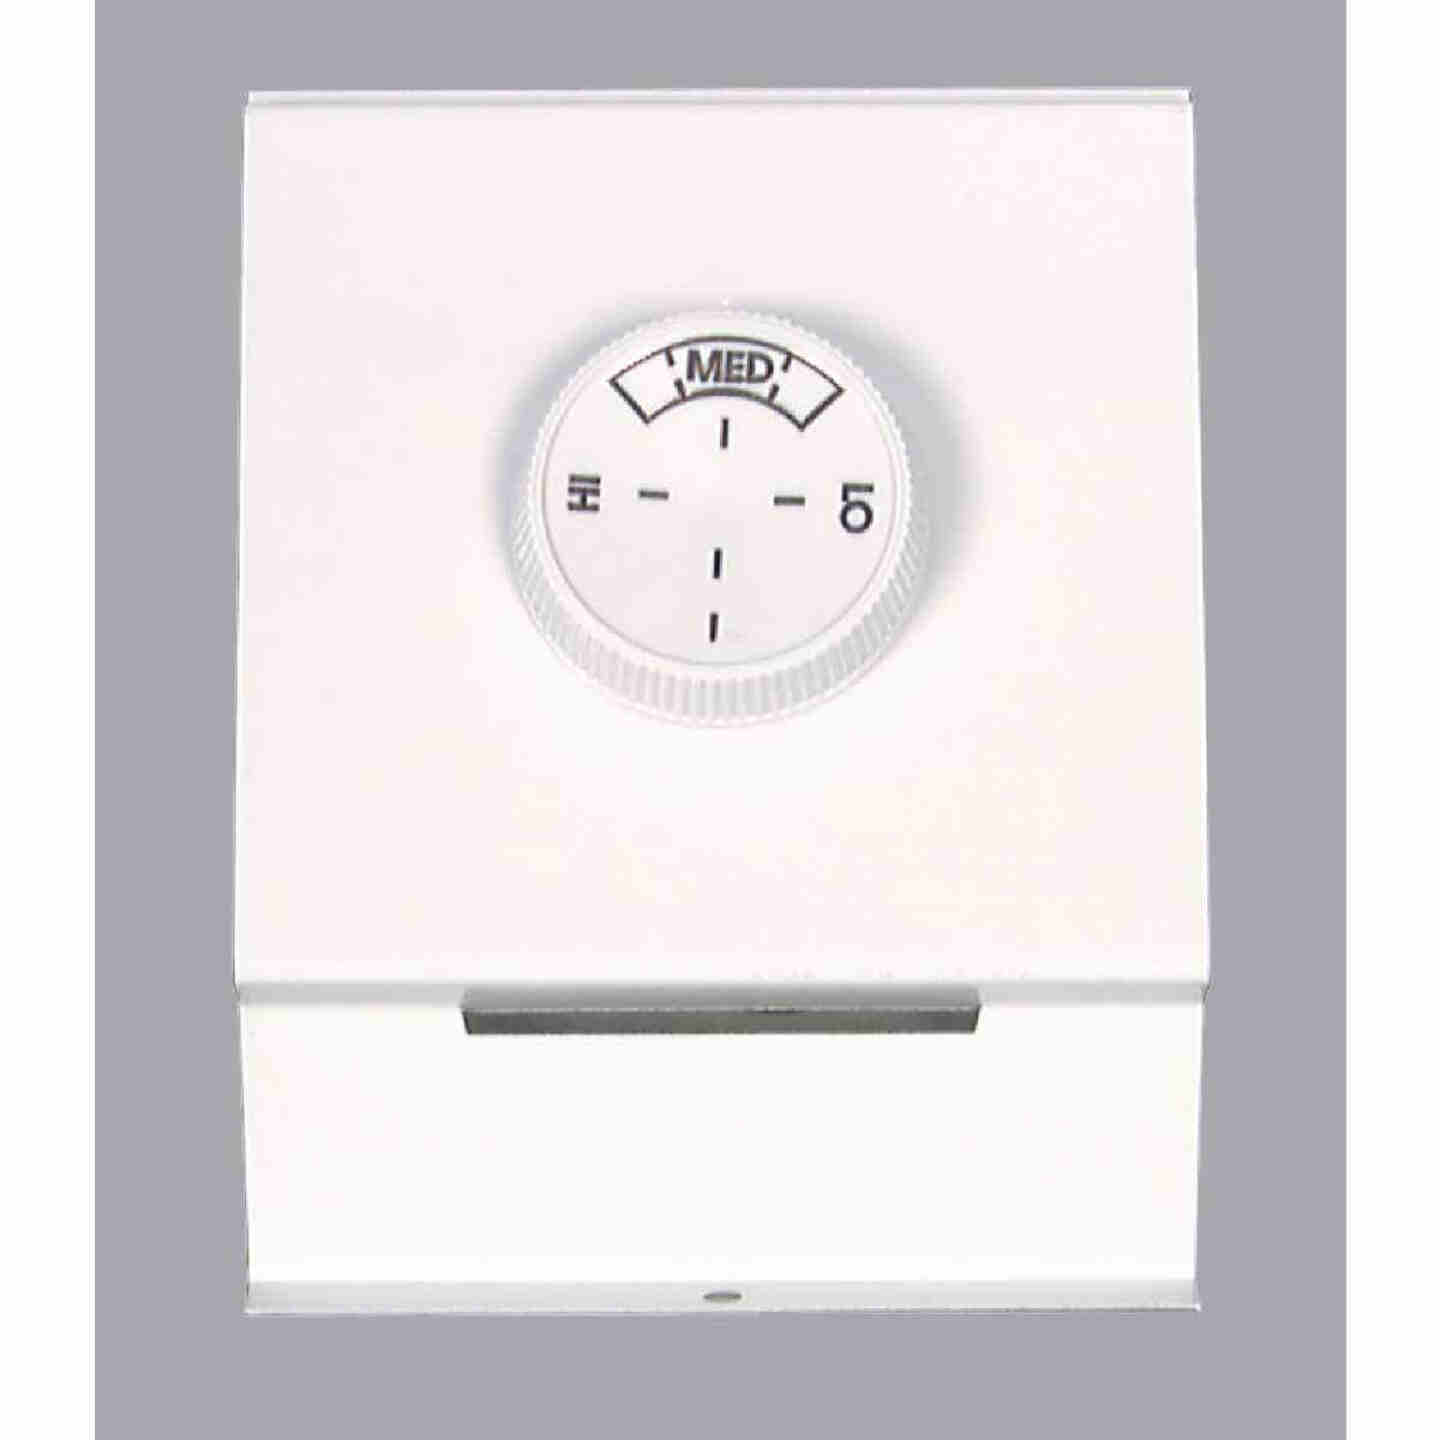 FAHRENHEAT White Single 22A at 120-277V AC Electric Baseboard Heater Thermostat Image 1